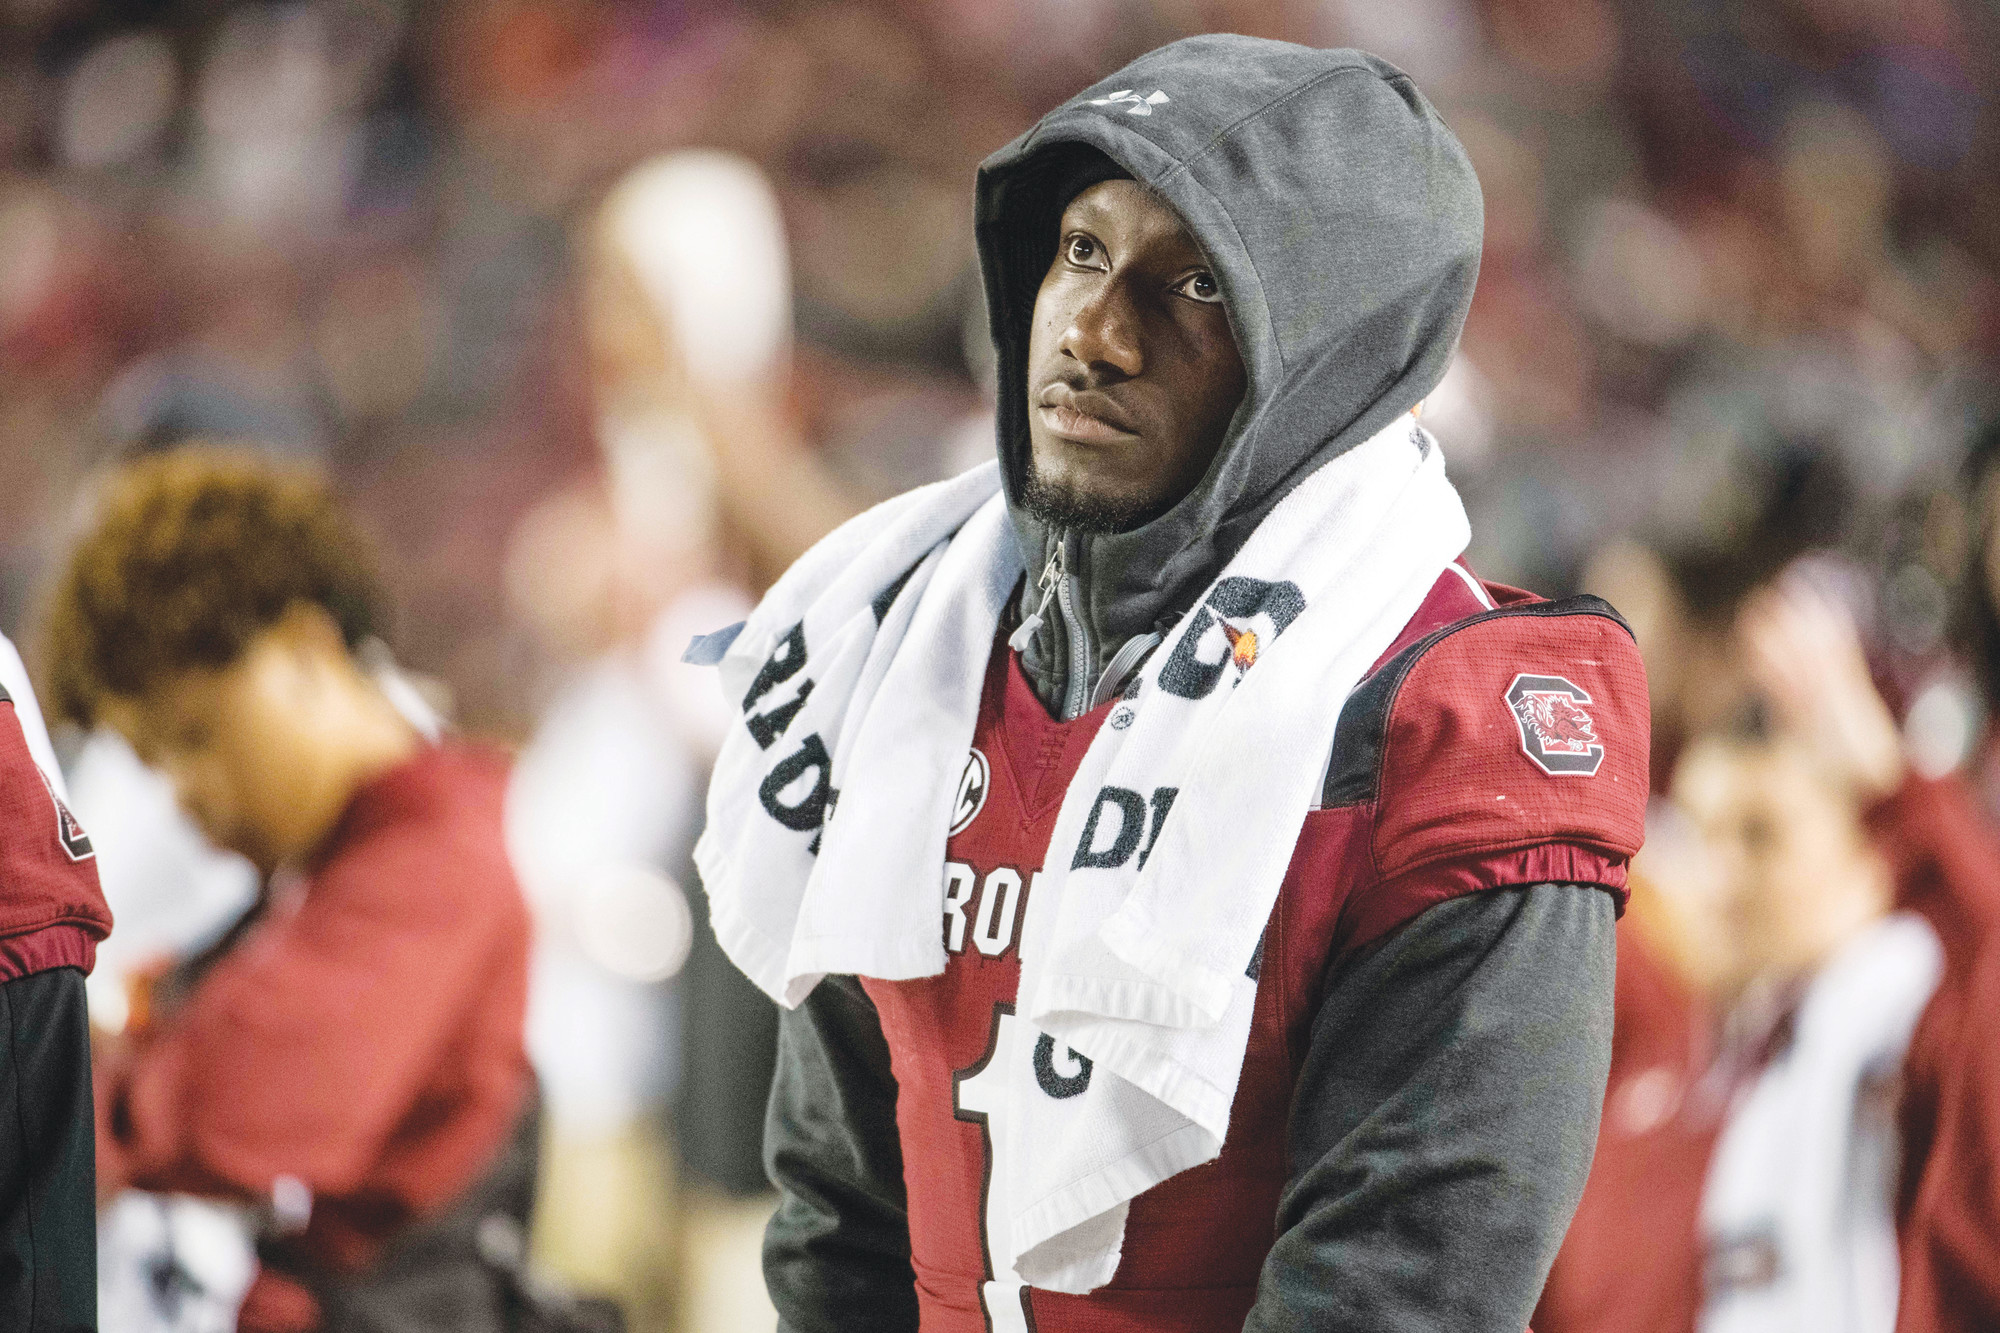 South Carolina wide receiver Deebo Samuel, who saw most of the 2017 season from the sideline because of an injury, hopes to make a major impact for the Gamecocks this season.